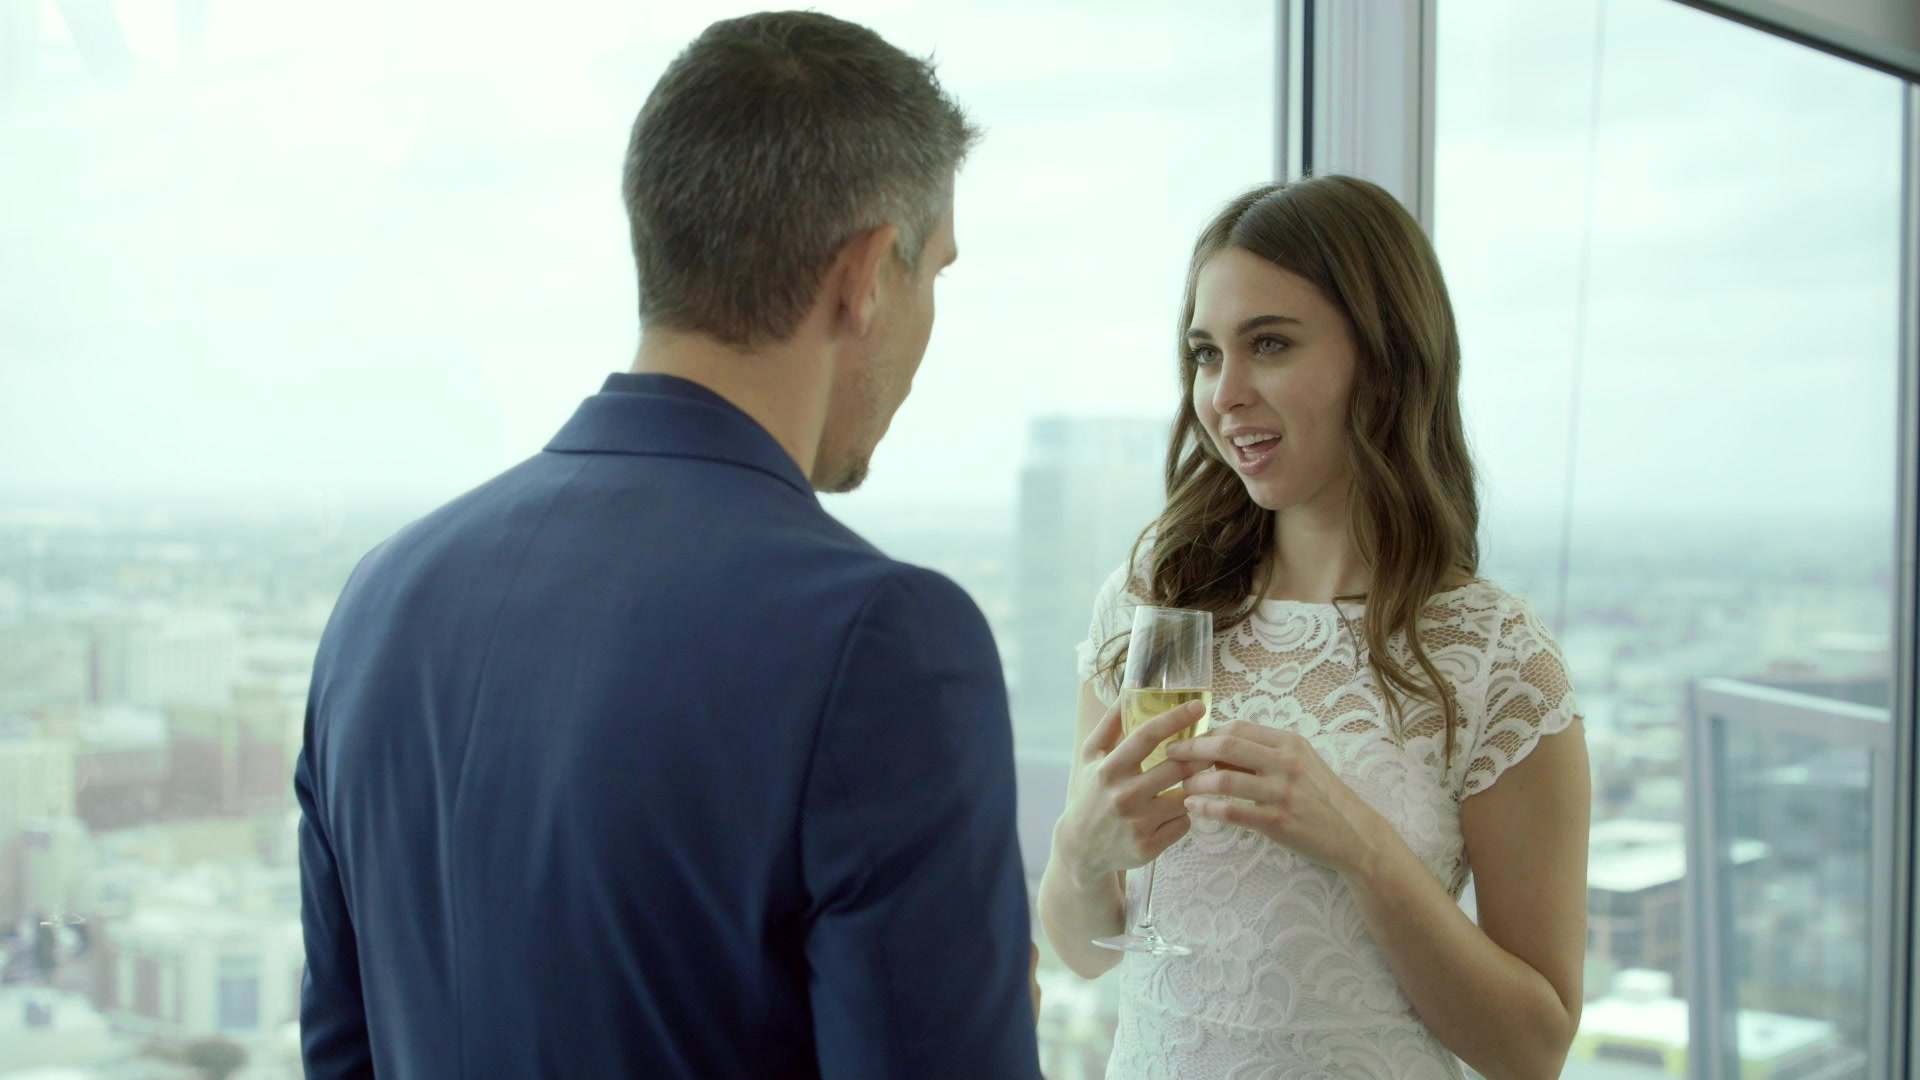 Scene with Mick Blue and Riley Reid - image 2 out of 20